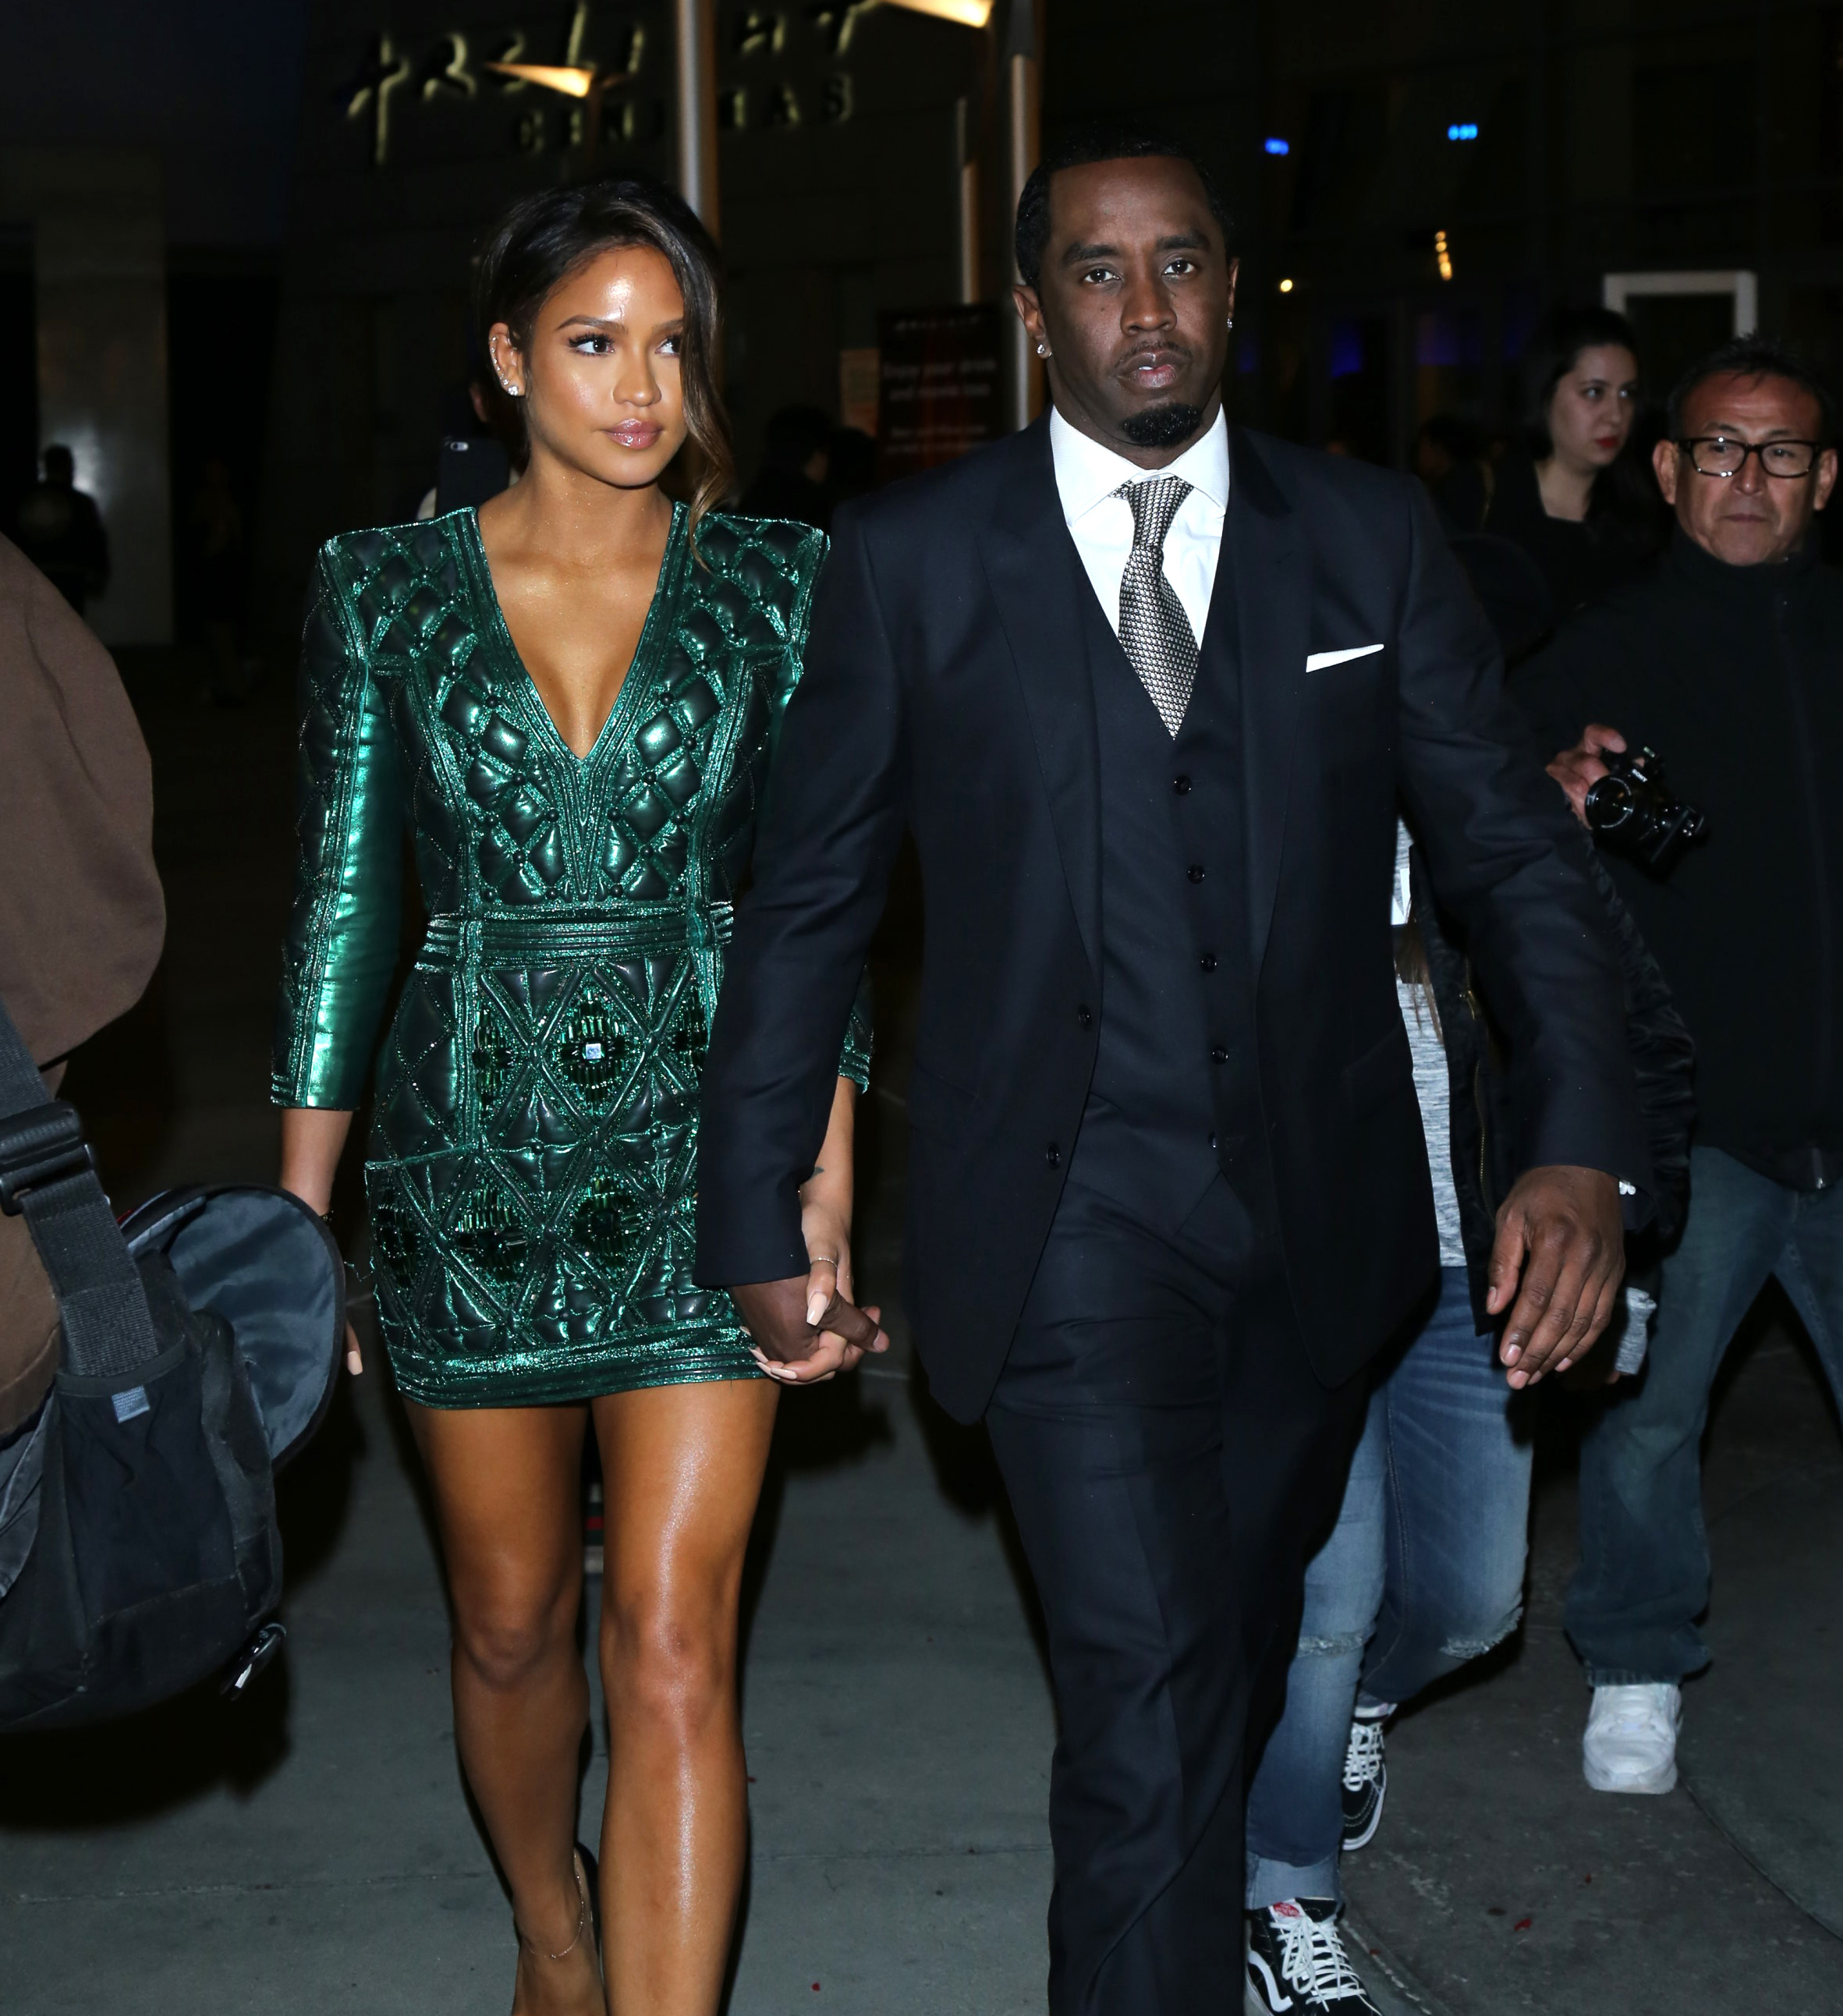 7 Year Itch? Did Sean 'P. Didy' Combs Leave Cassie For A Younger Woman?